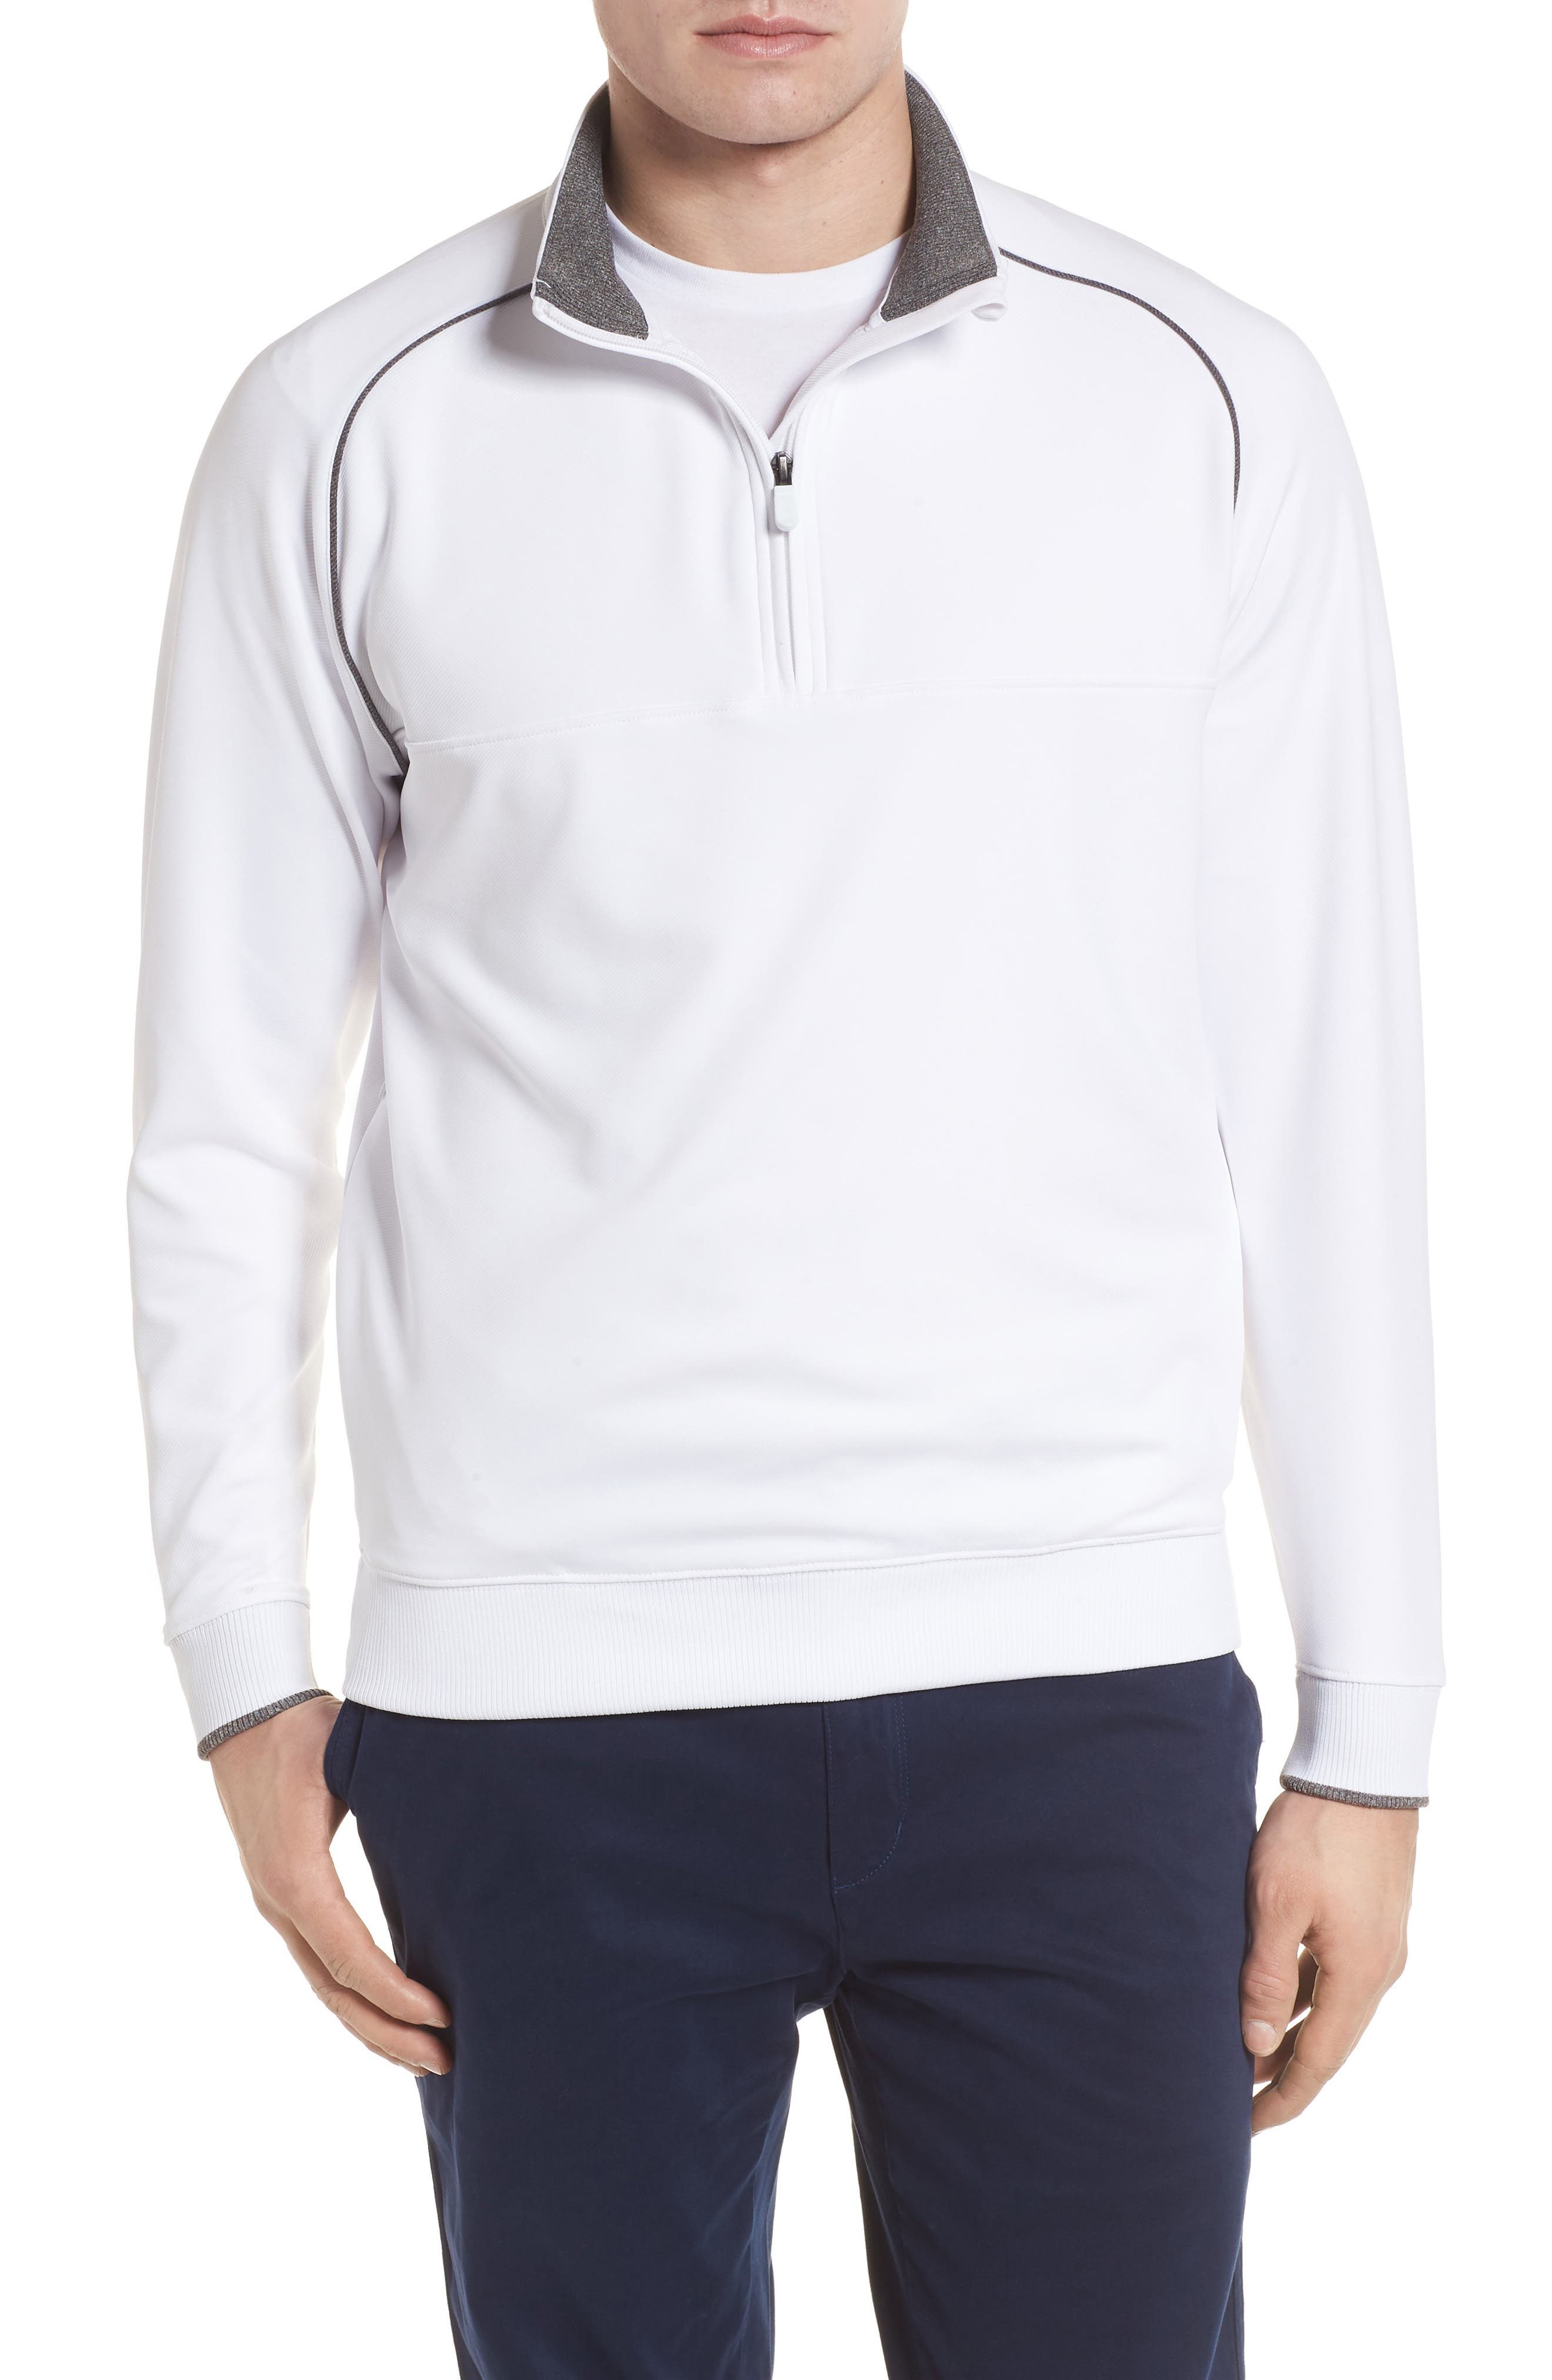 XH20 Banded Bottom Pullover,                             Main thumbnail 1, color,                             White